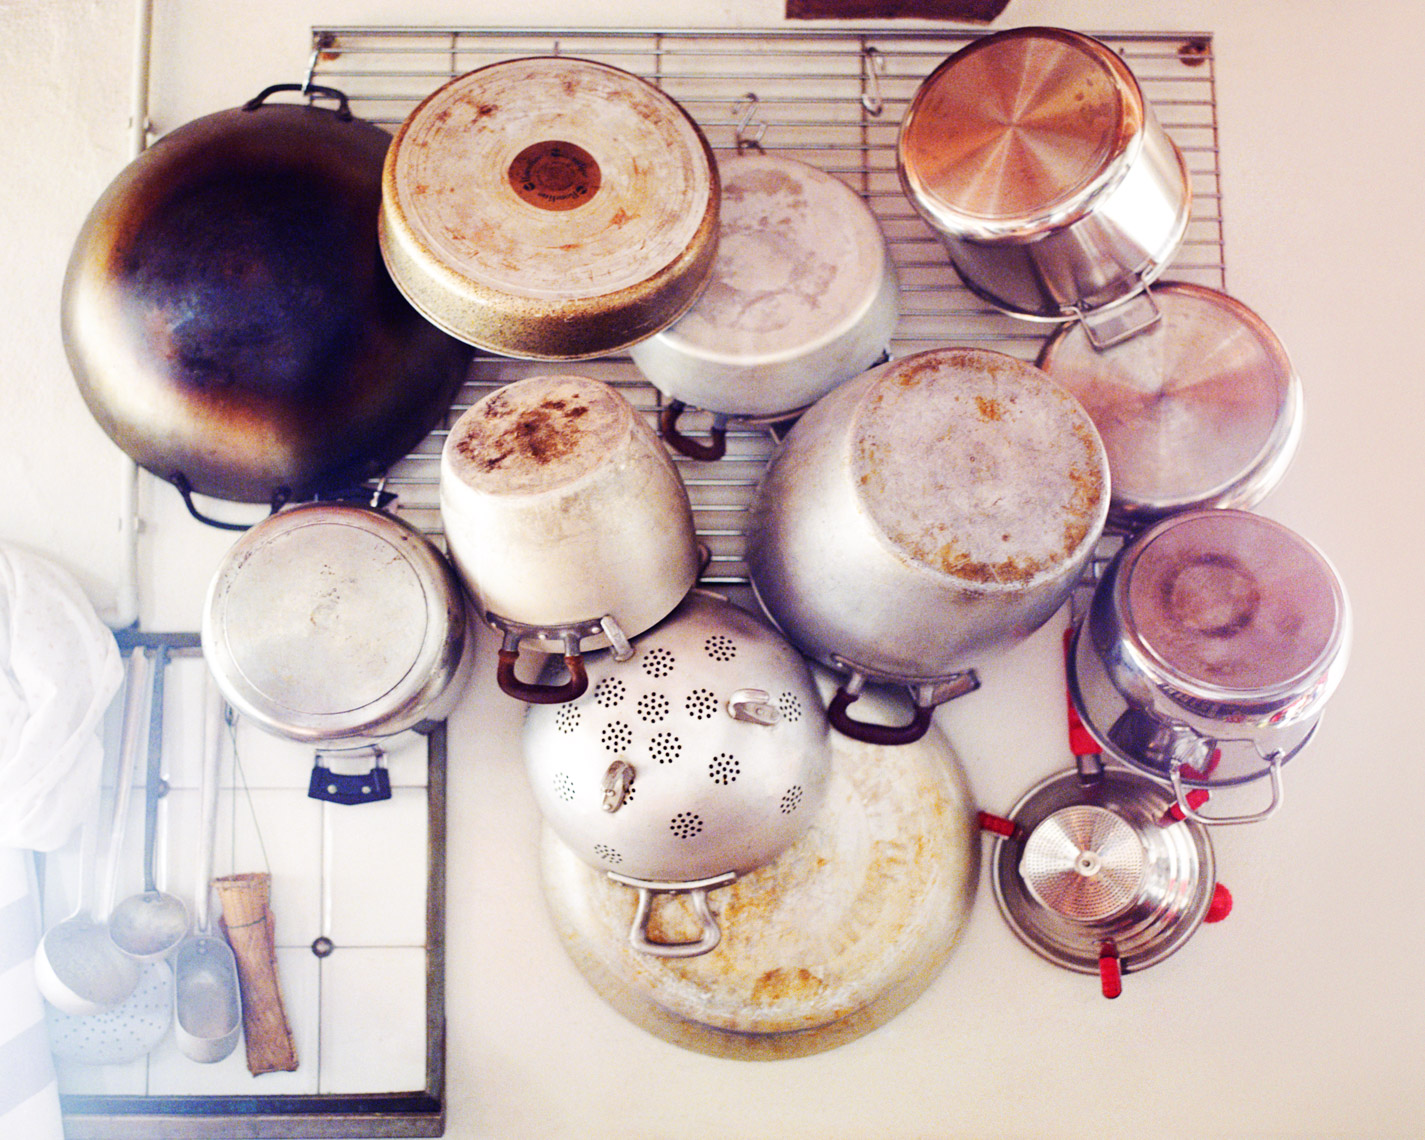 Rustic pots and pans | Tosca Radigonda Photography